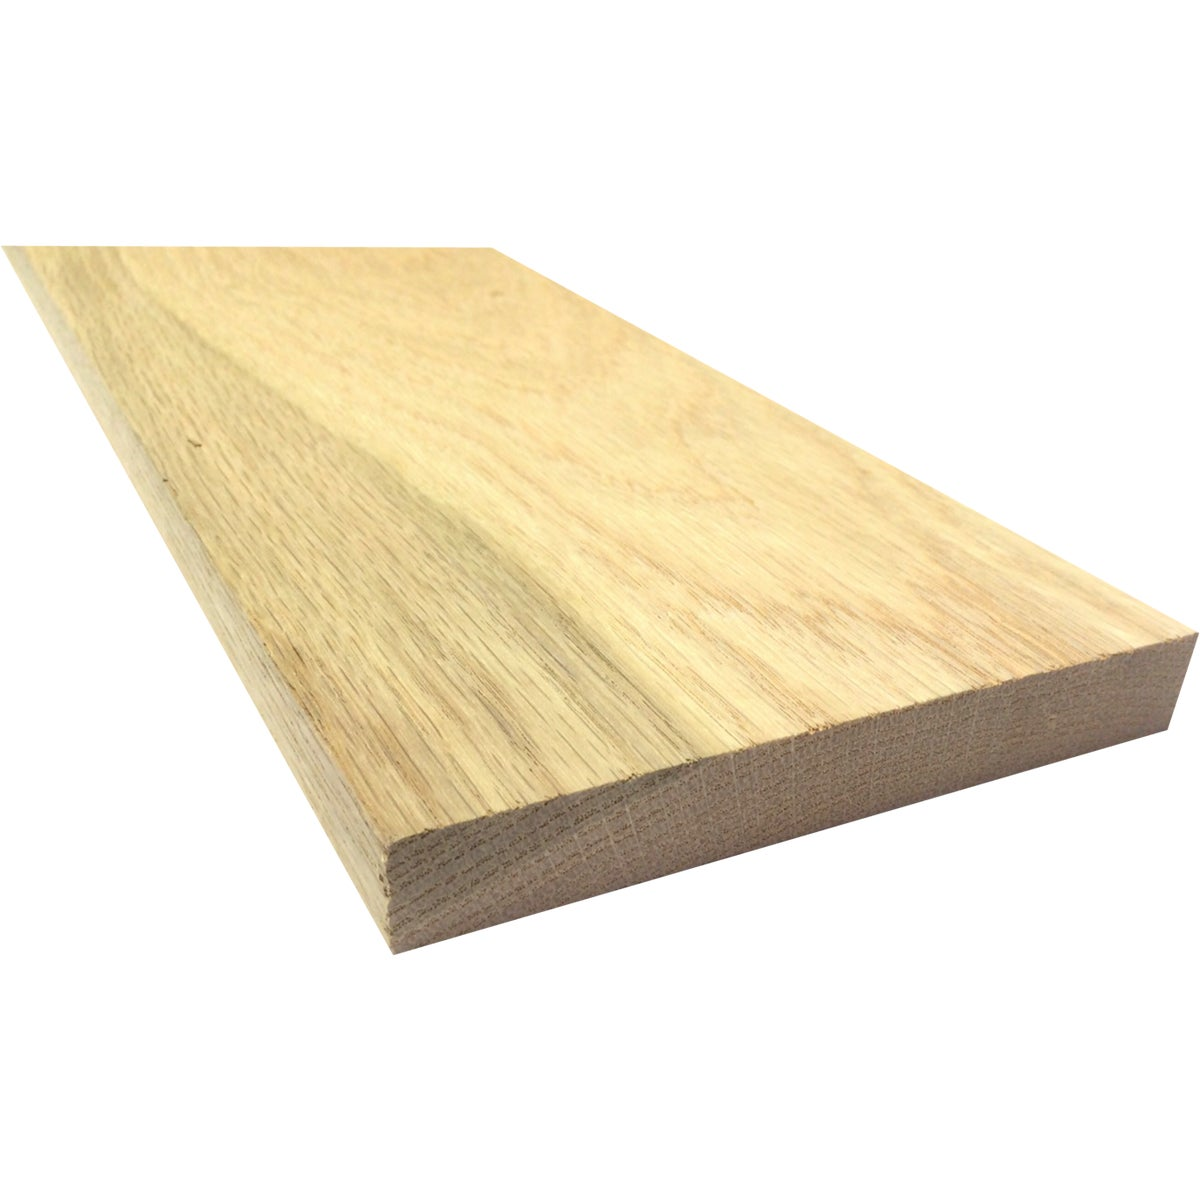 "1X6""X6' OAK BOARD - PB19538 by Waddell Mfg Company"